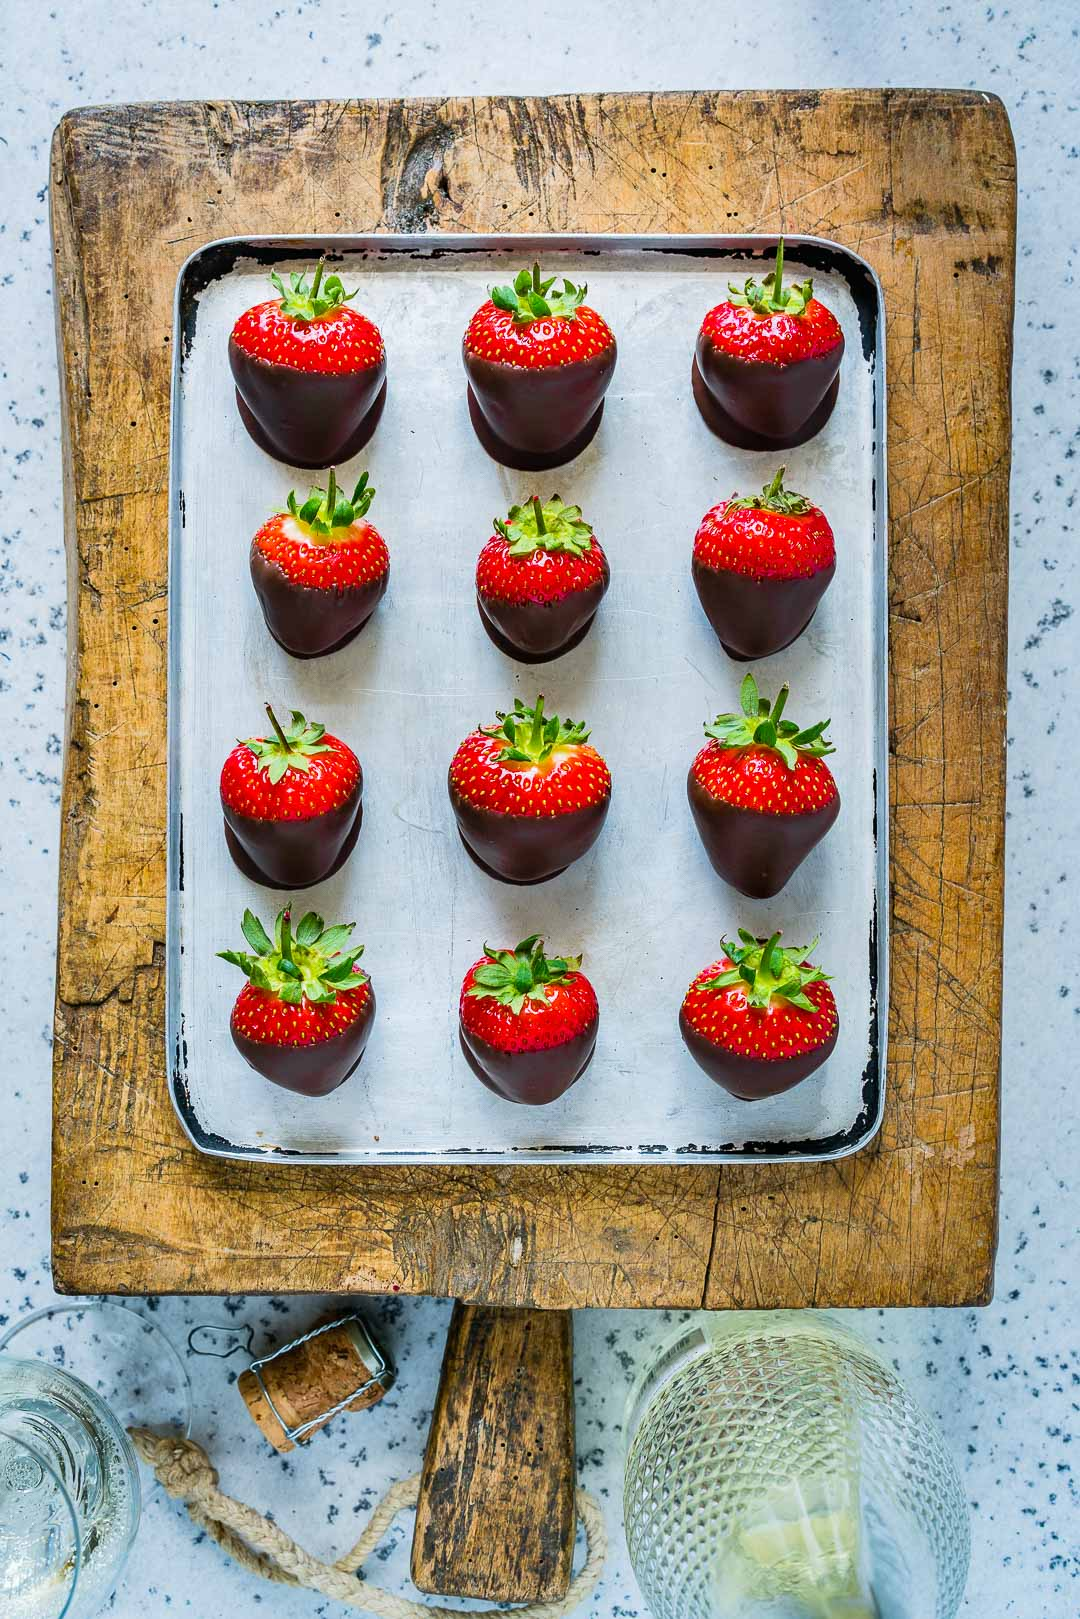 How To make Chocolate Covered Strawberries 4